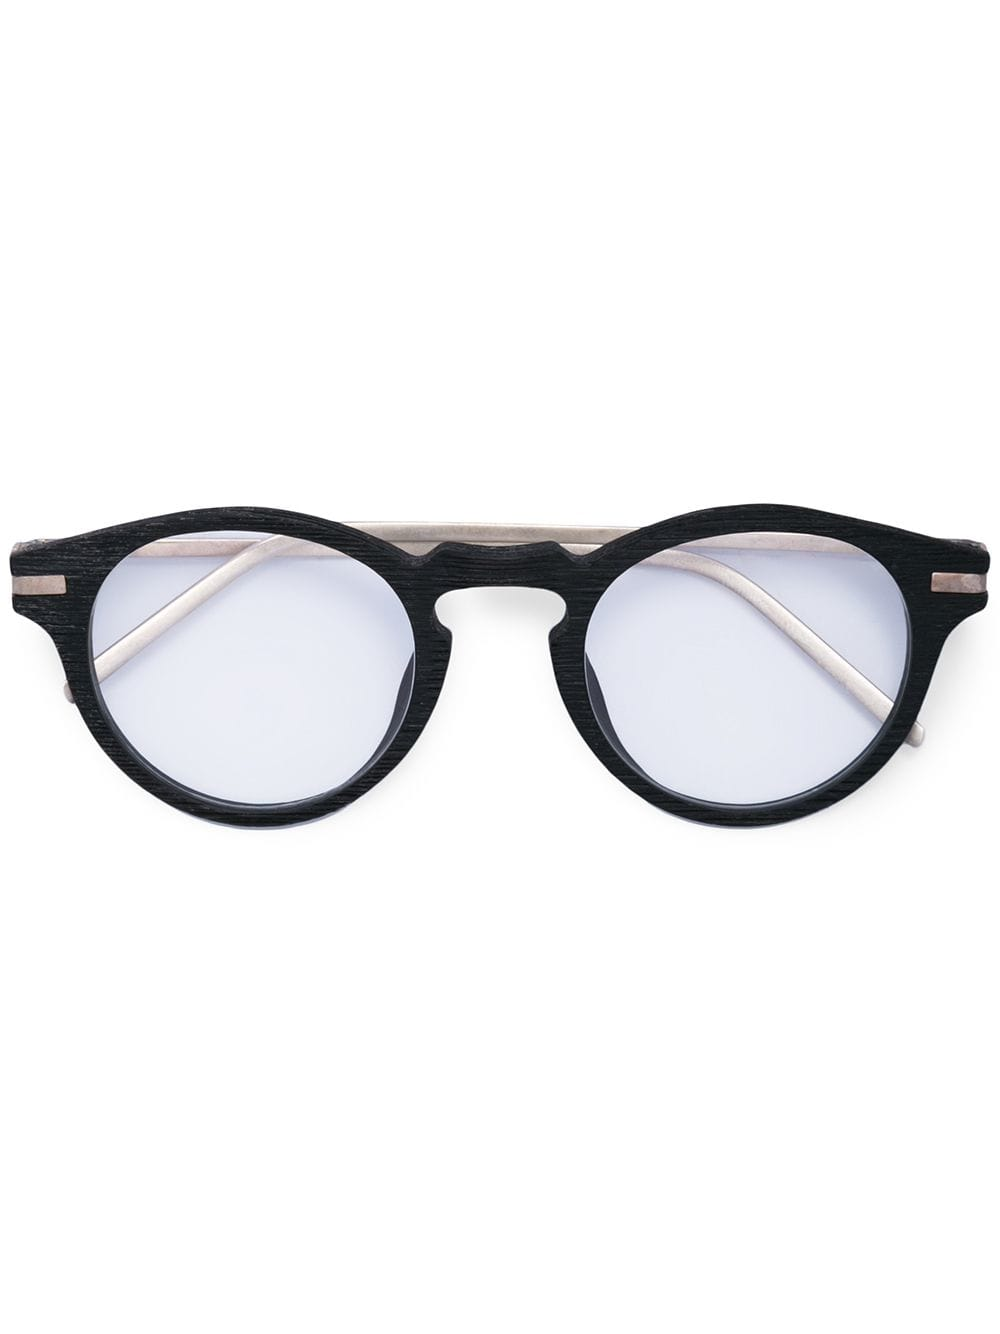 TAICHI MURAKAMI NATURAL BUFFALO HORN OPTICAL FRAME WITH 925 SILVER TEMPLE